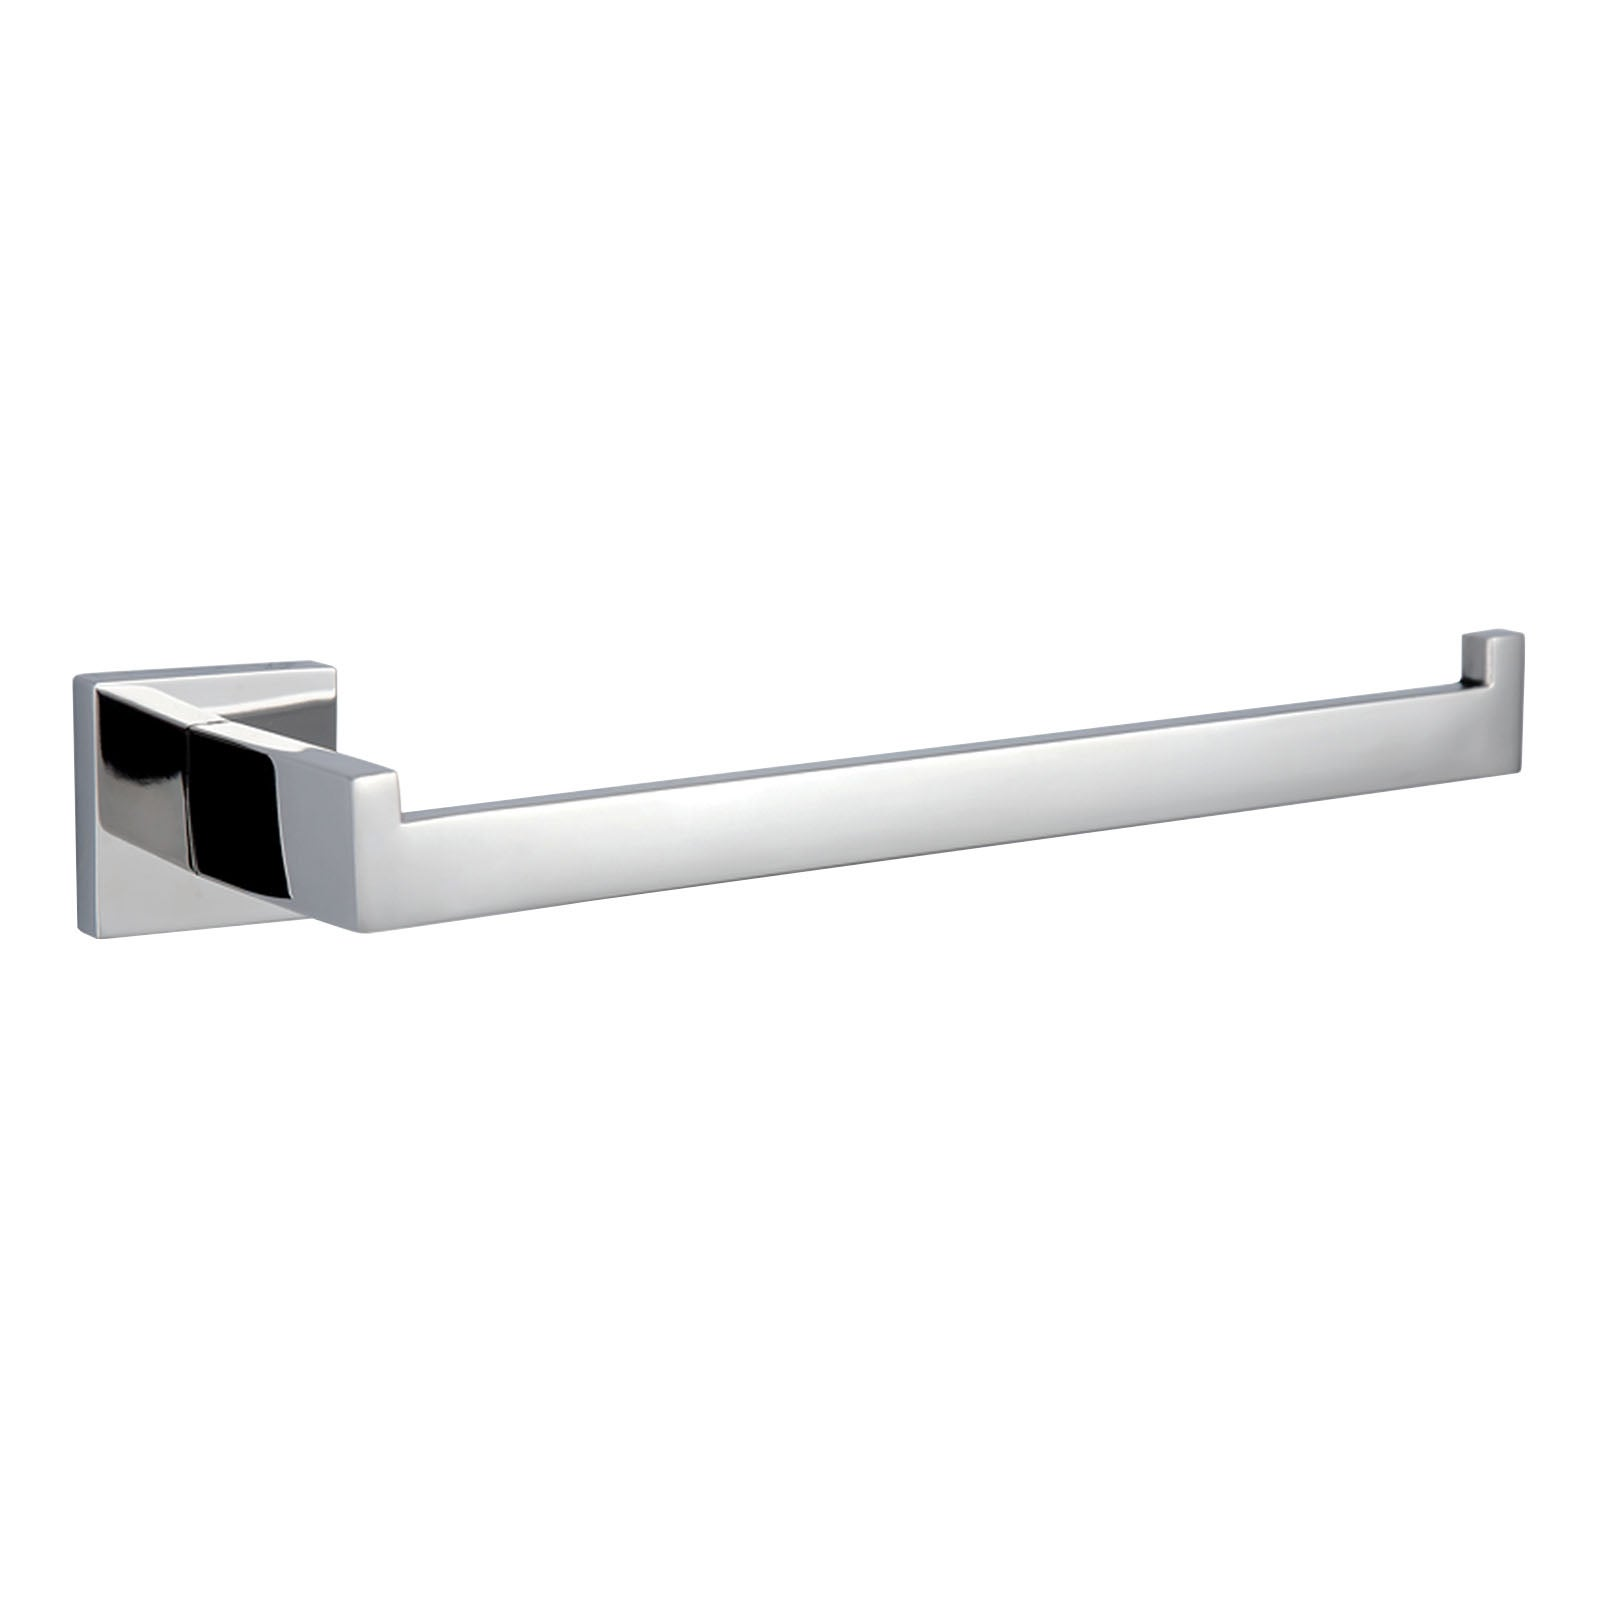 Hand Towel Rack Hook Square Holder Bright Bathroom SUS304 Accessories Wall Mount